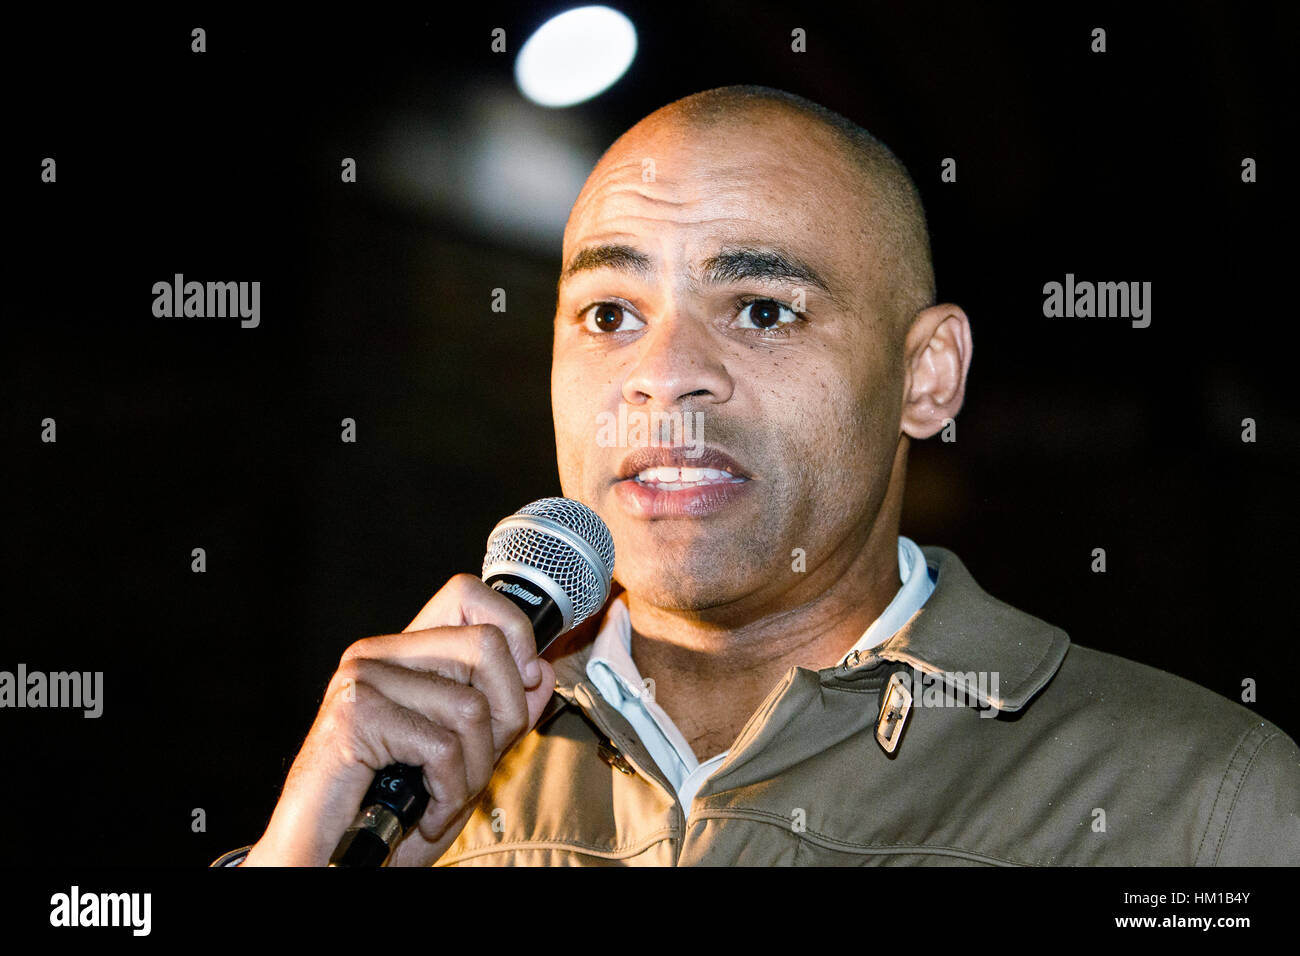 Bristol, UK. 30th January, 2017. Bristol Mayor Marvin Rees is pictured talking to protesters in College Green during - Stock Image